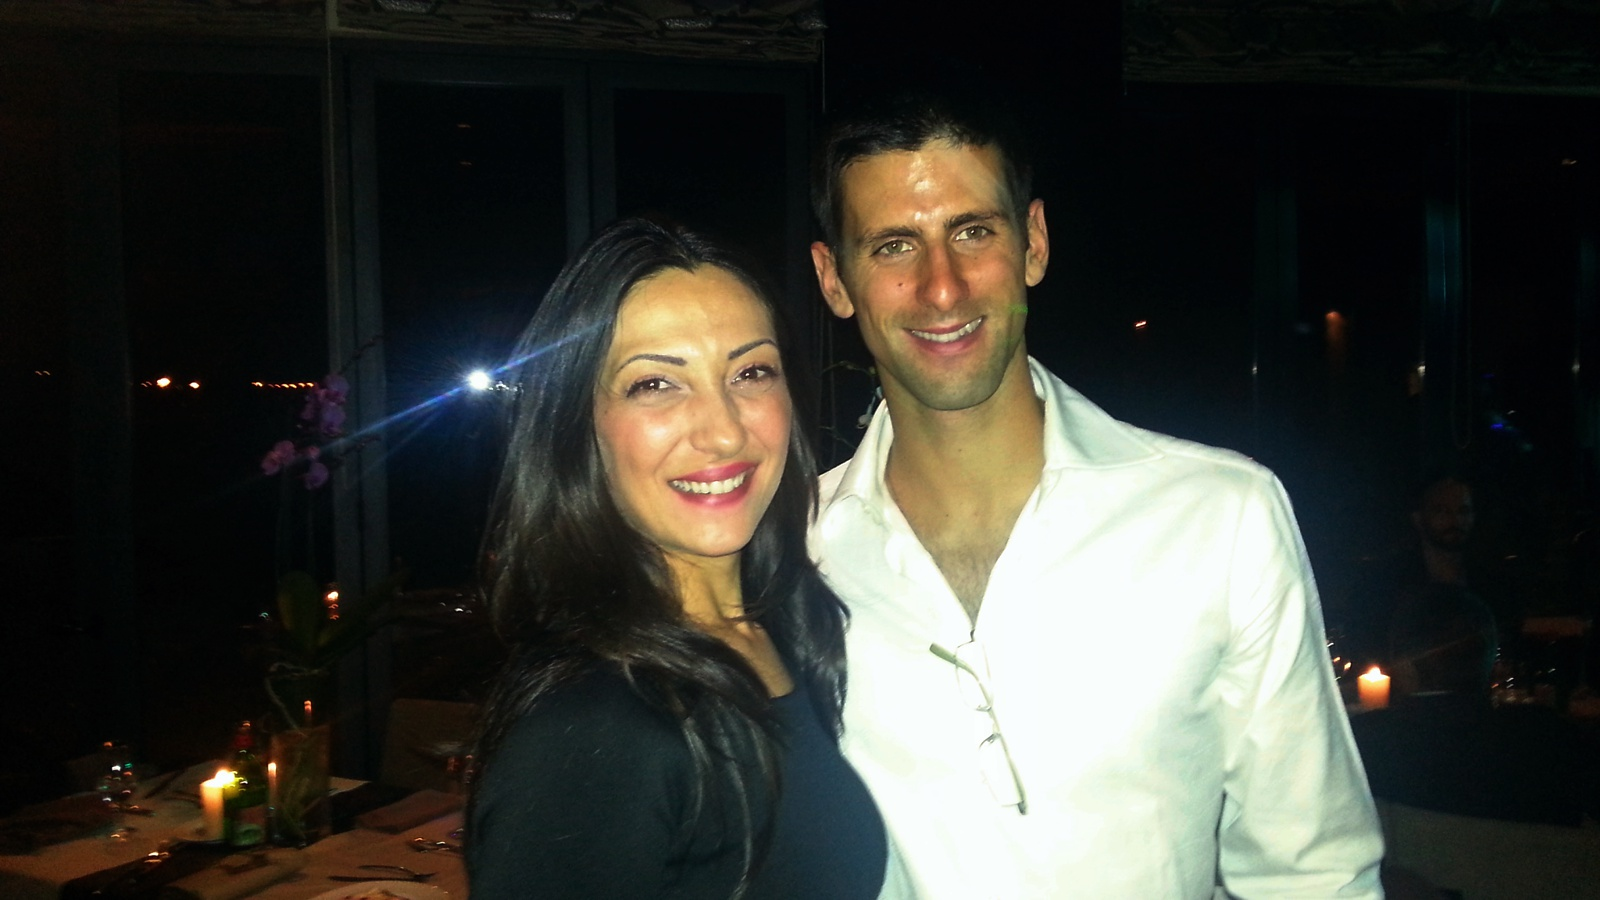 Dragana Djermanovic and Novak Djokovic, world tennis champion